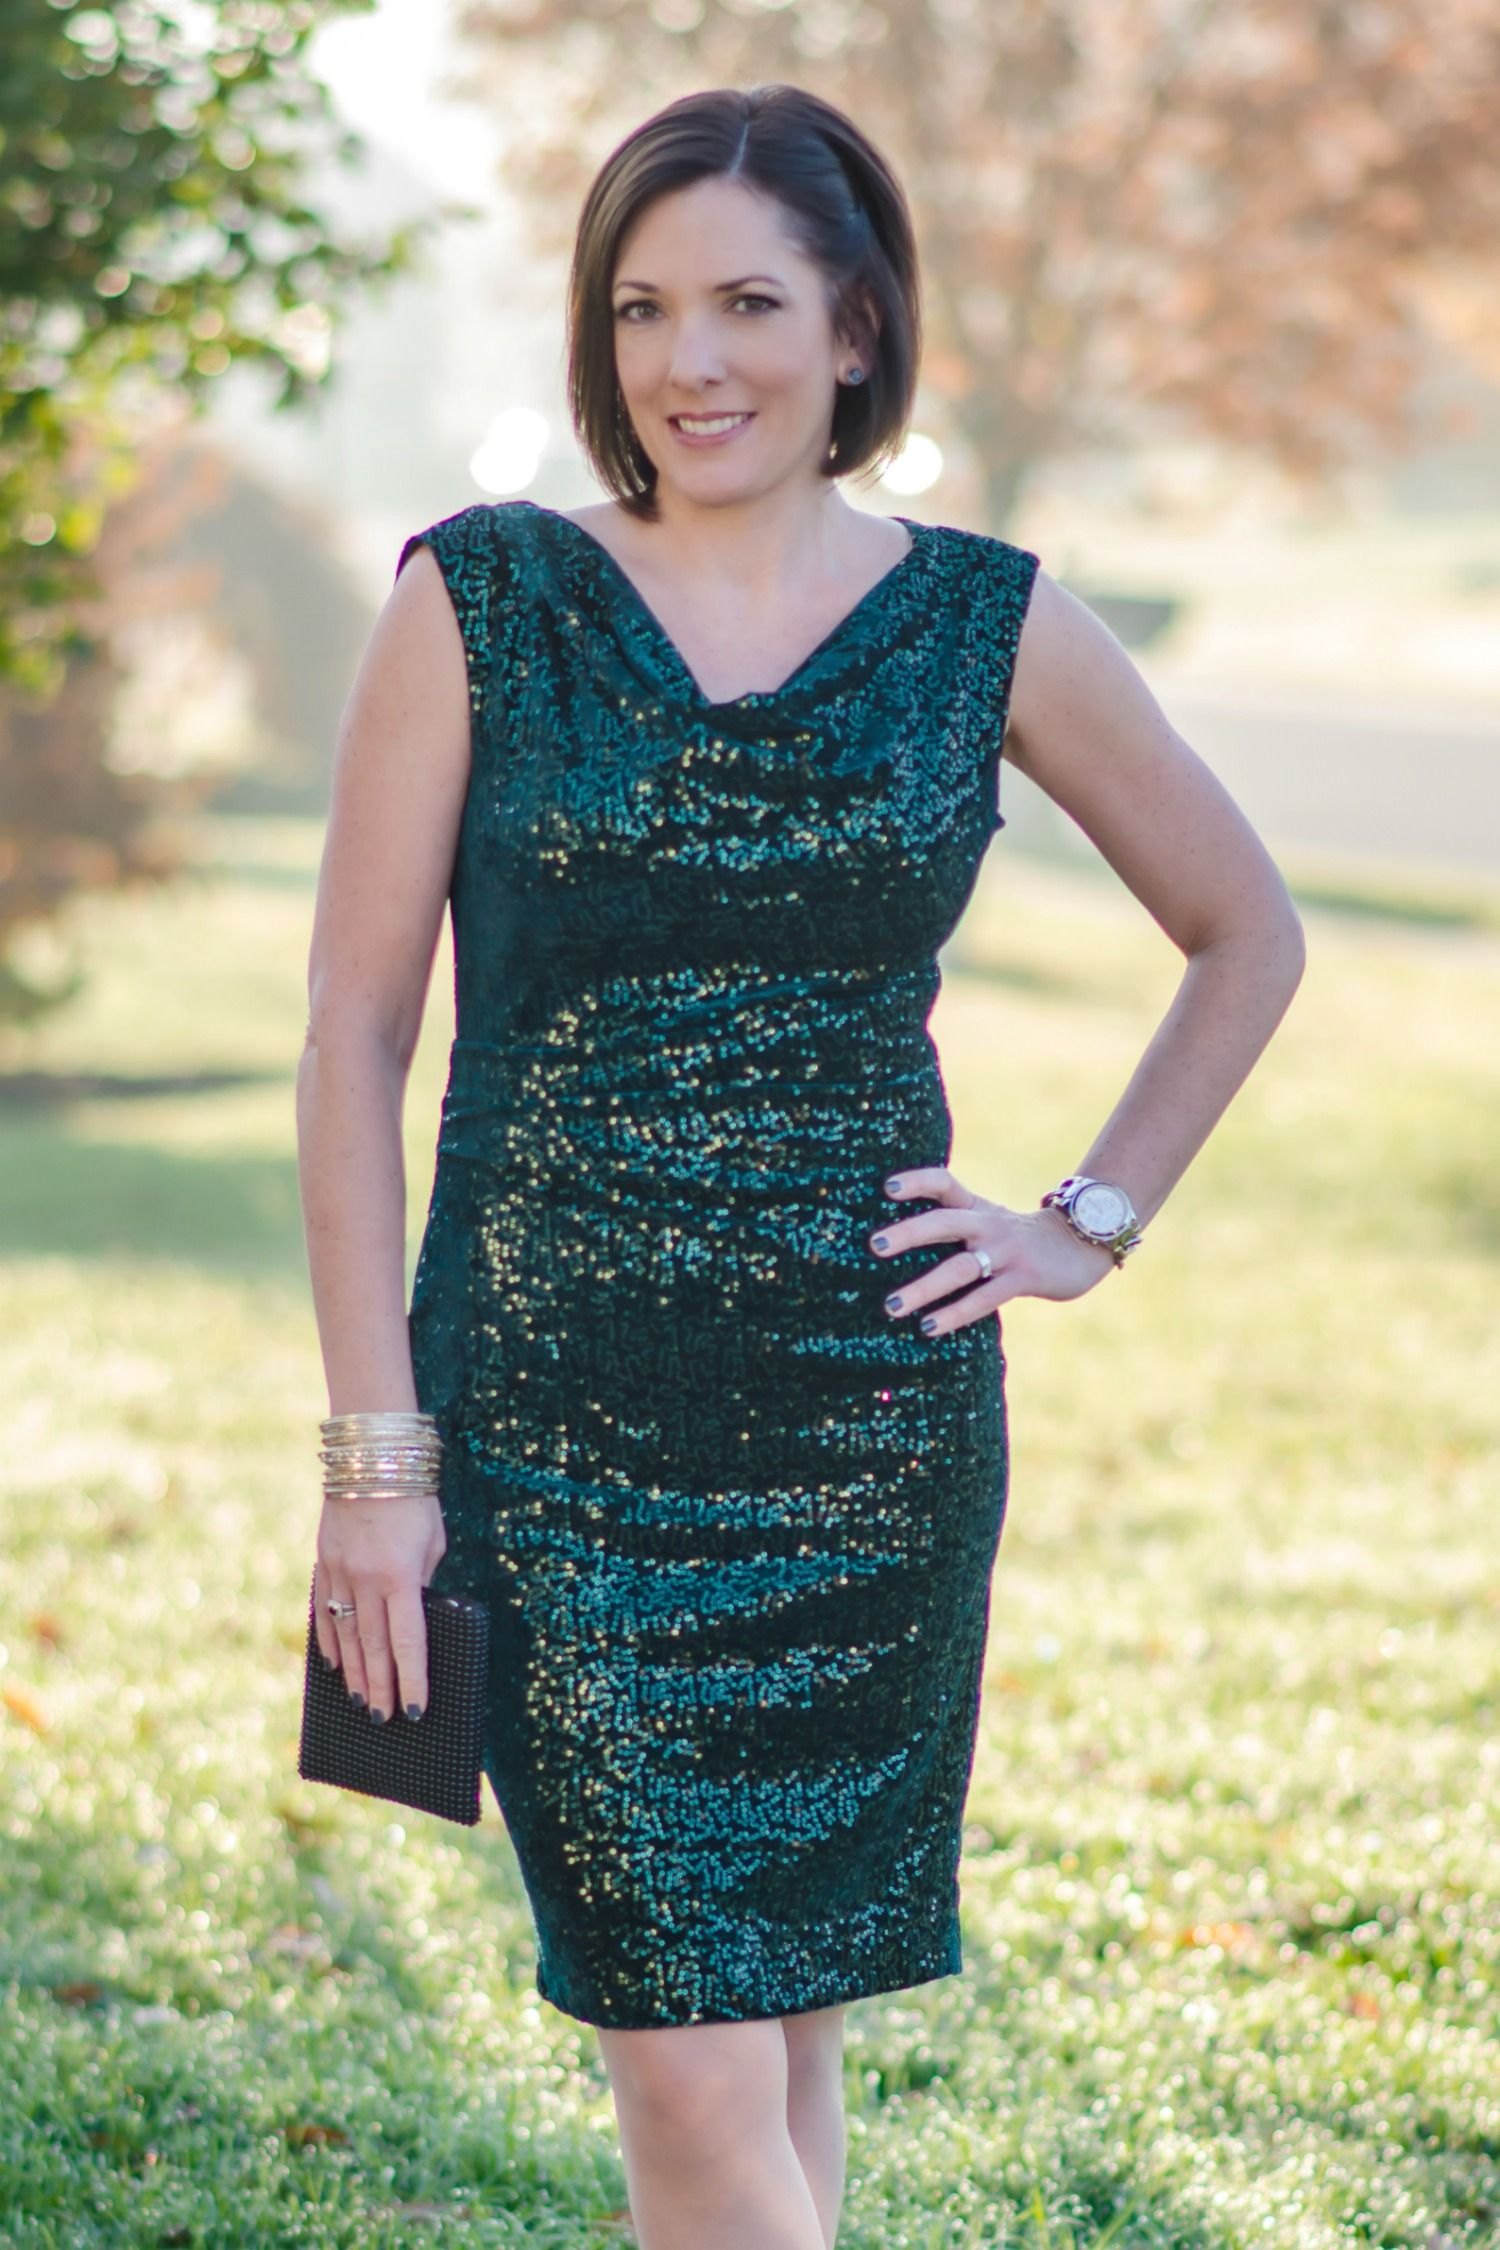 aea7062fceabc Holiday Style from Ross Dress for Less Click through for really helpful  fashion ideas and tips on how to dress your best over the holidays! Jo  Lynne Shane